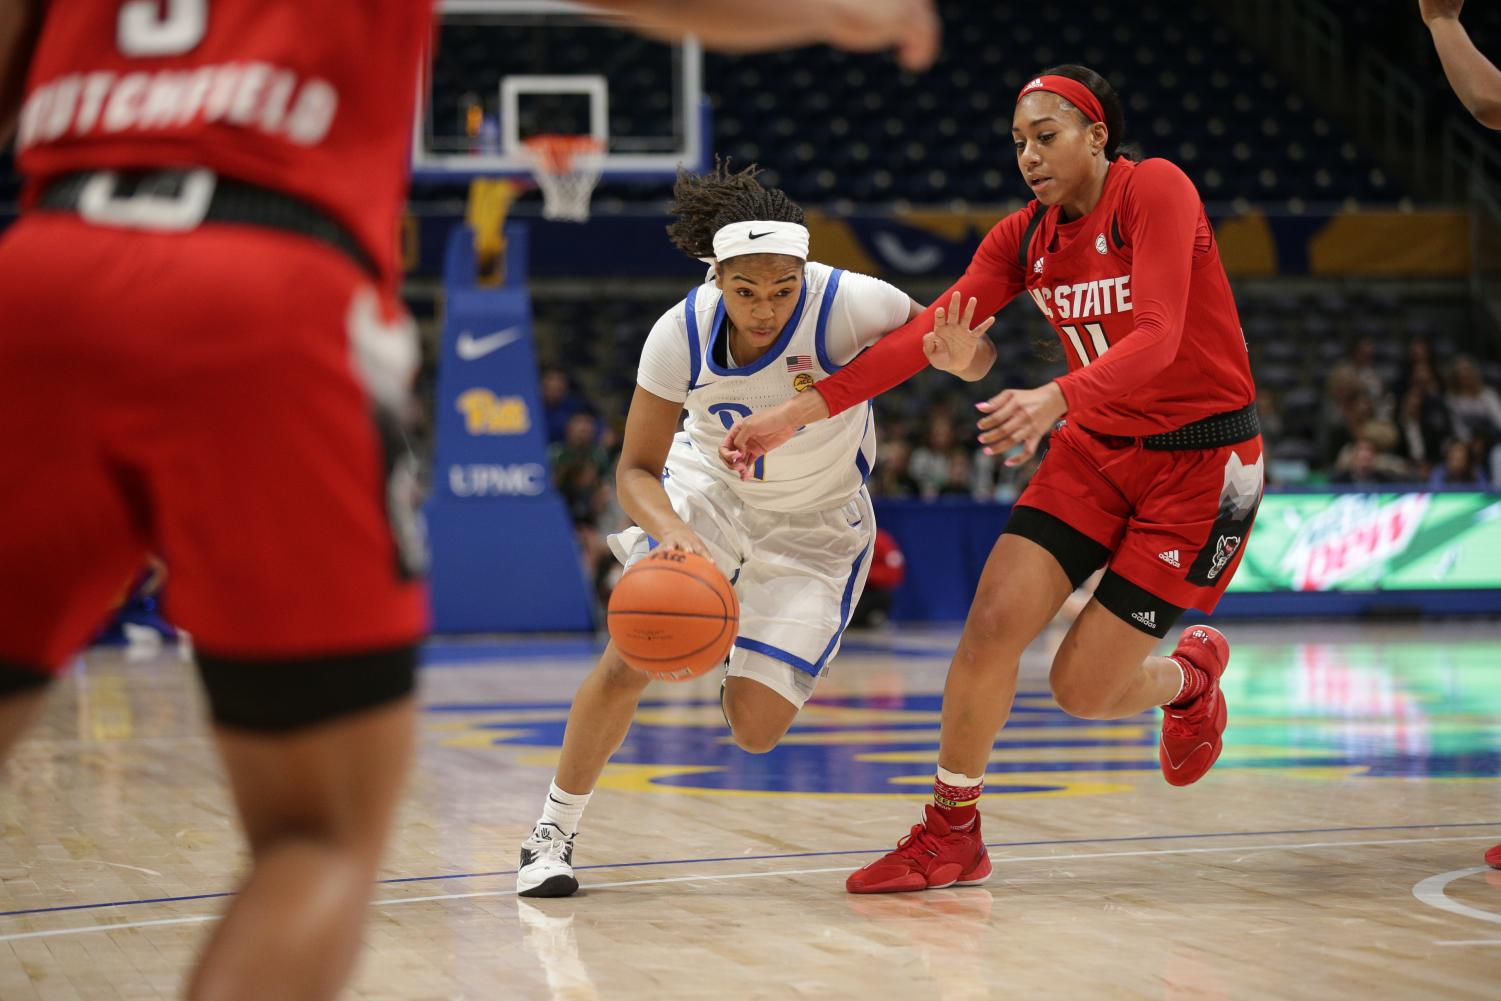 First-year guard Dayshanette Harris (1) attempts to drive toward the hoop during Pitt's 88-44 loss to NC State.